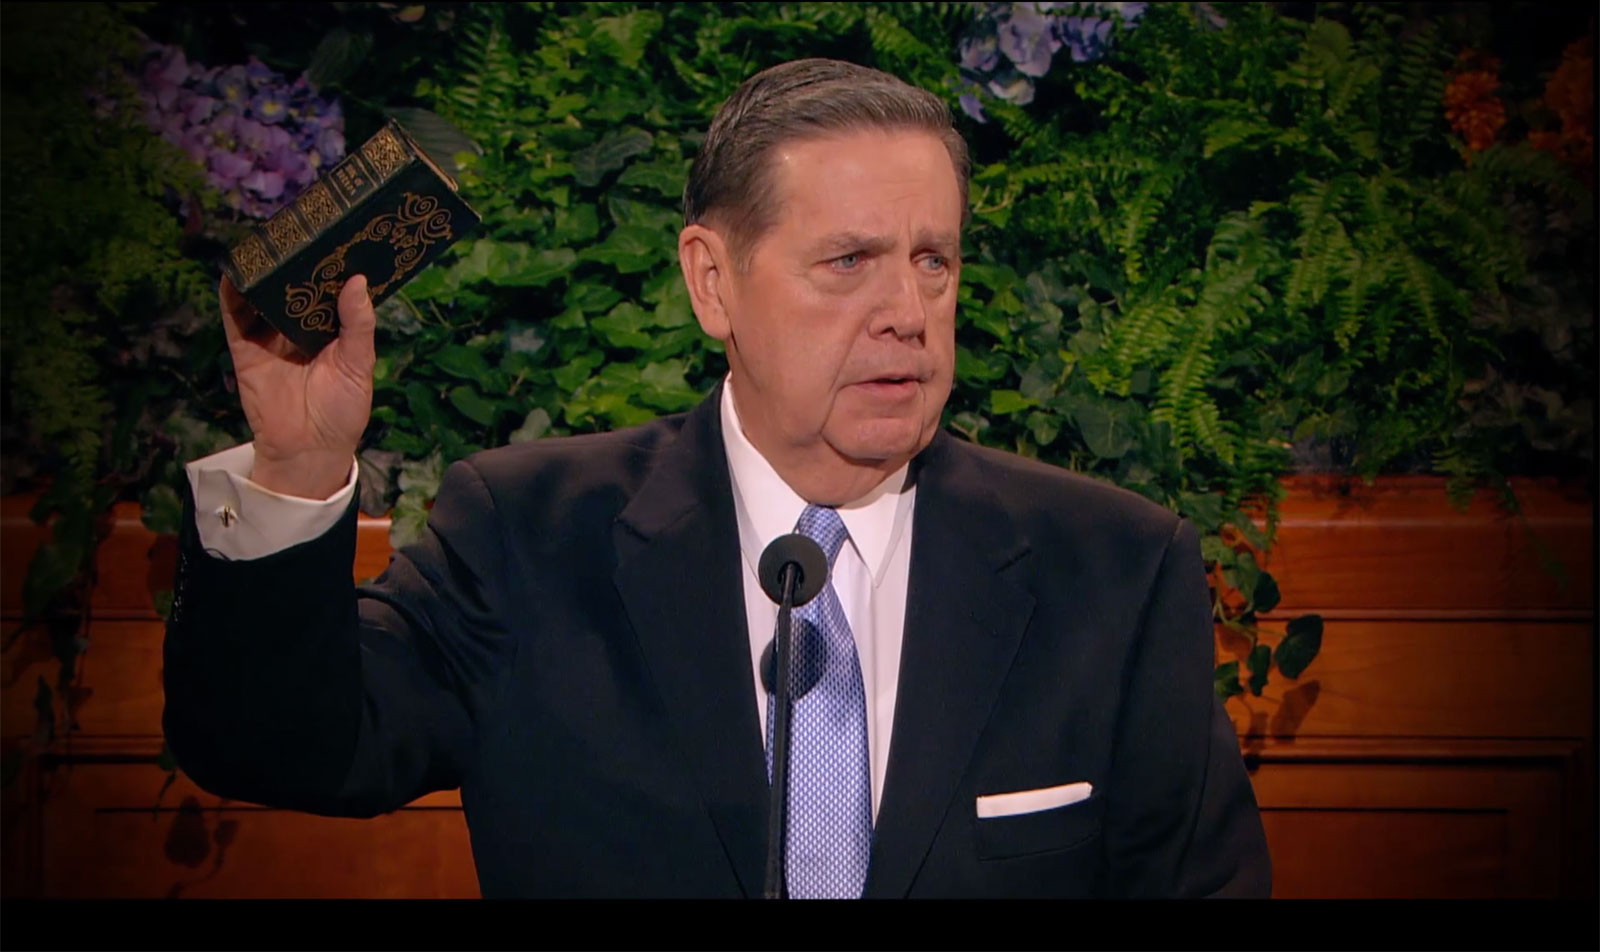 Jeffrey R. Holland, in a black suit, white shirt and light blue tie, stands at the pulpit in the conference center and holds up a copy of The Book of Mormon once owned by Hyrum Smith.